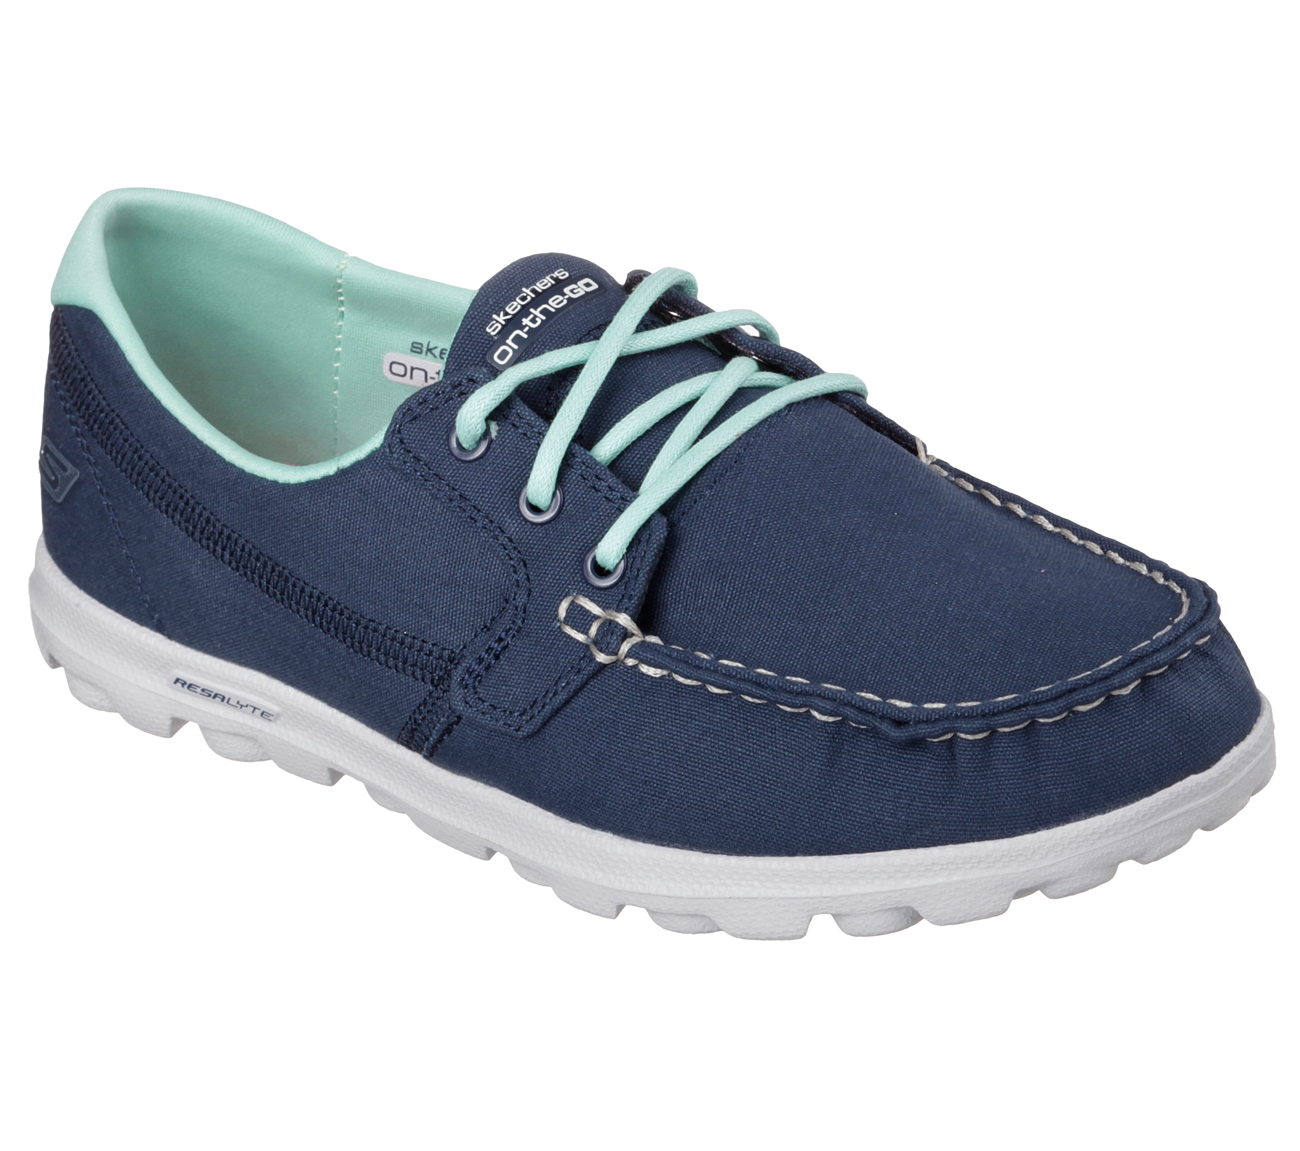 Buy SKECHERS Skechers On The GO ClipperBoat Shoes